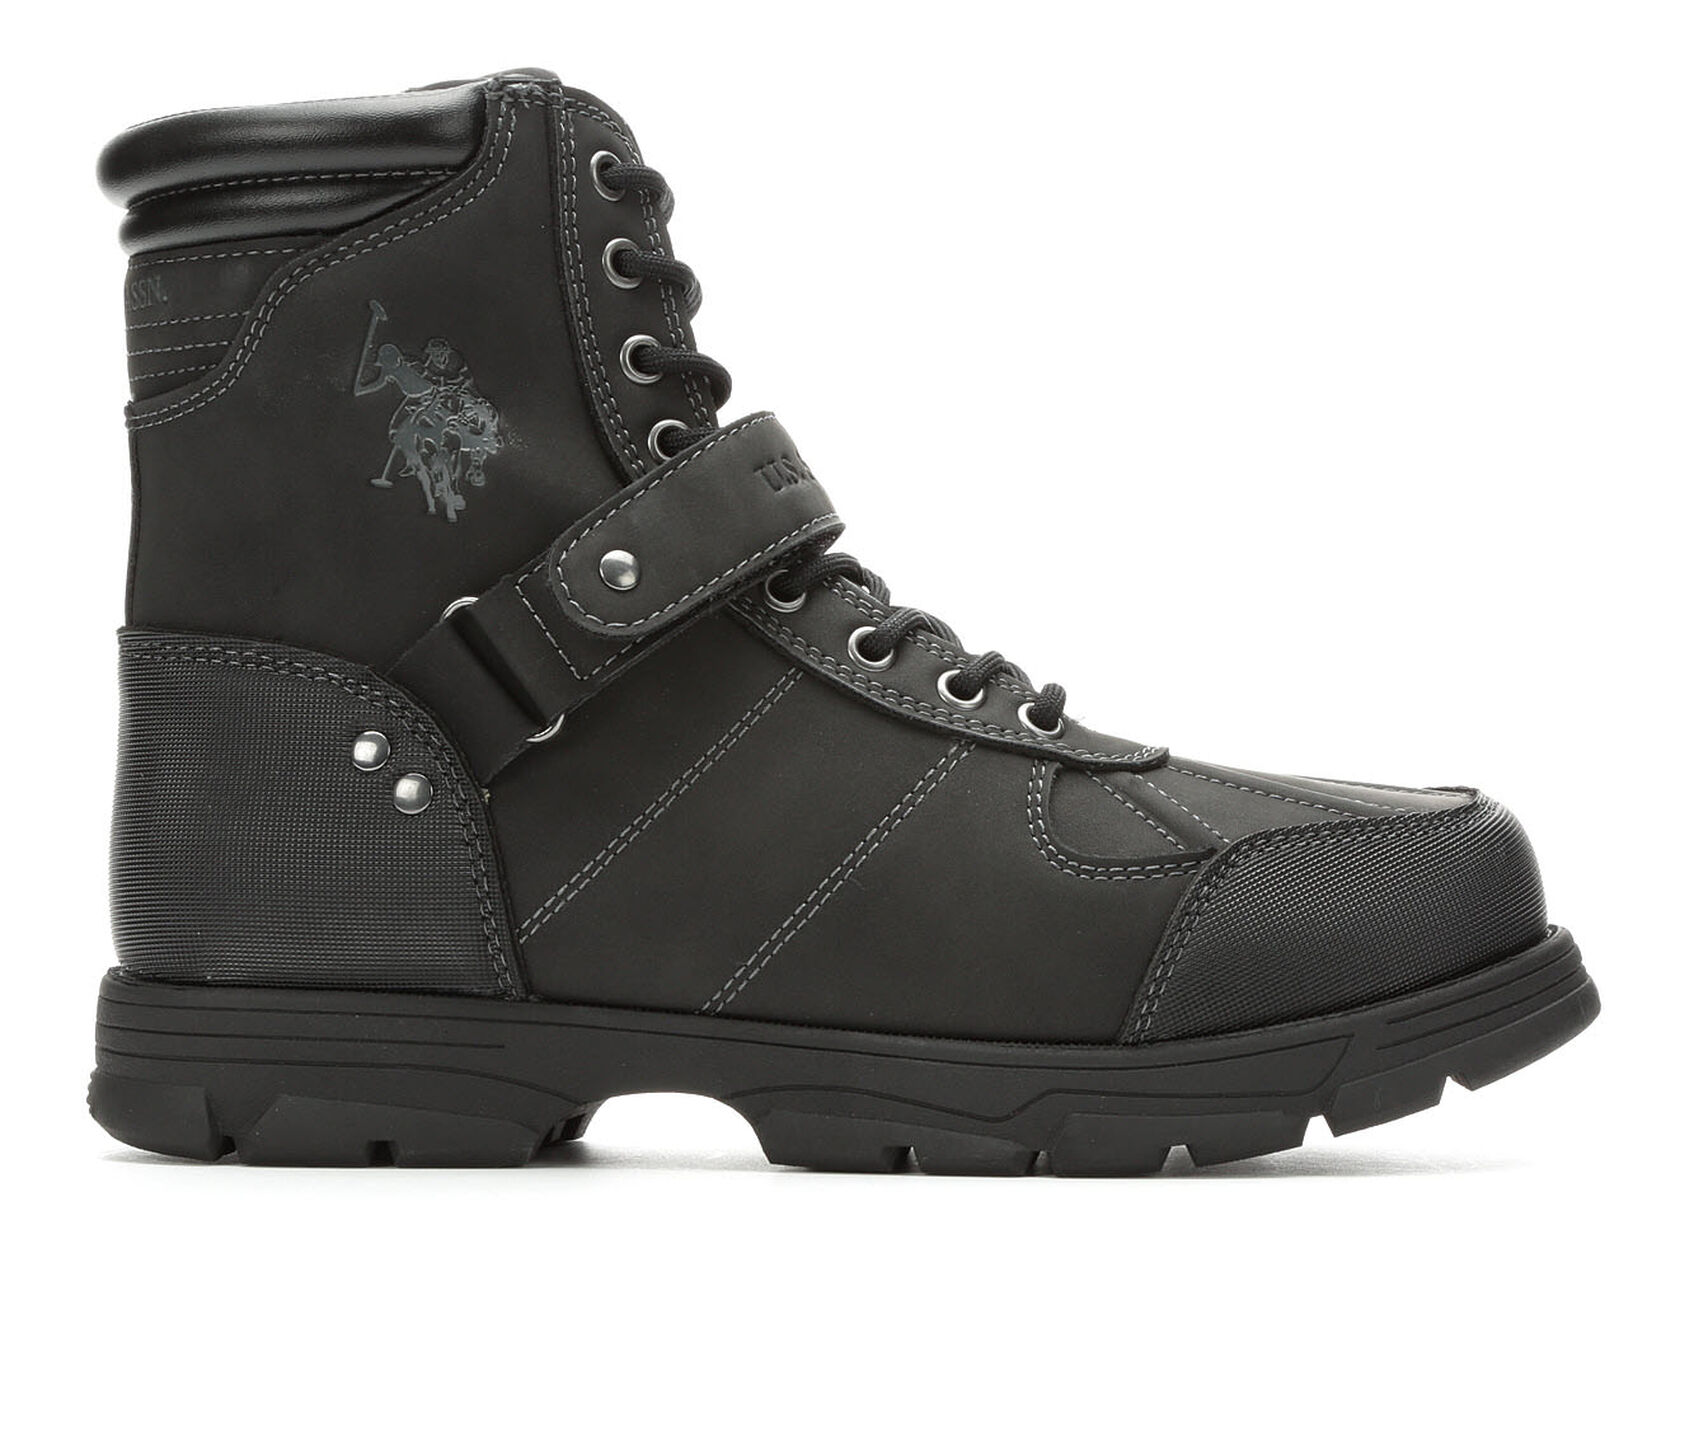 3d63b0ab7dbfb7 Men s US Polo Assn Connor Boots